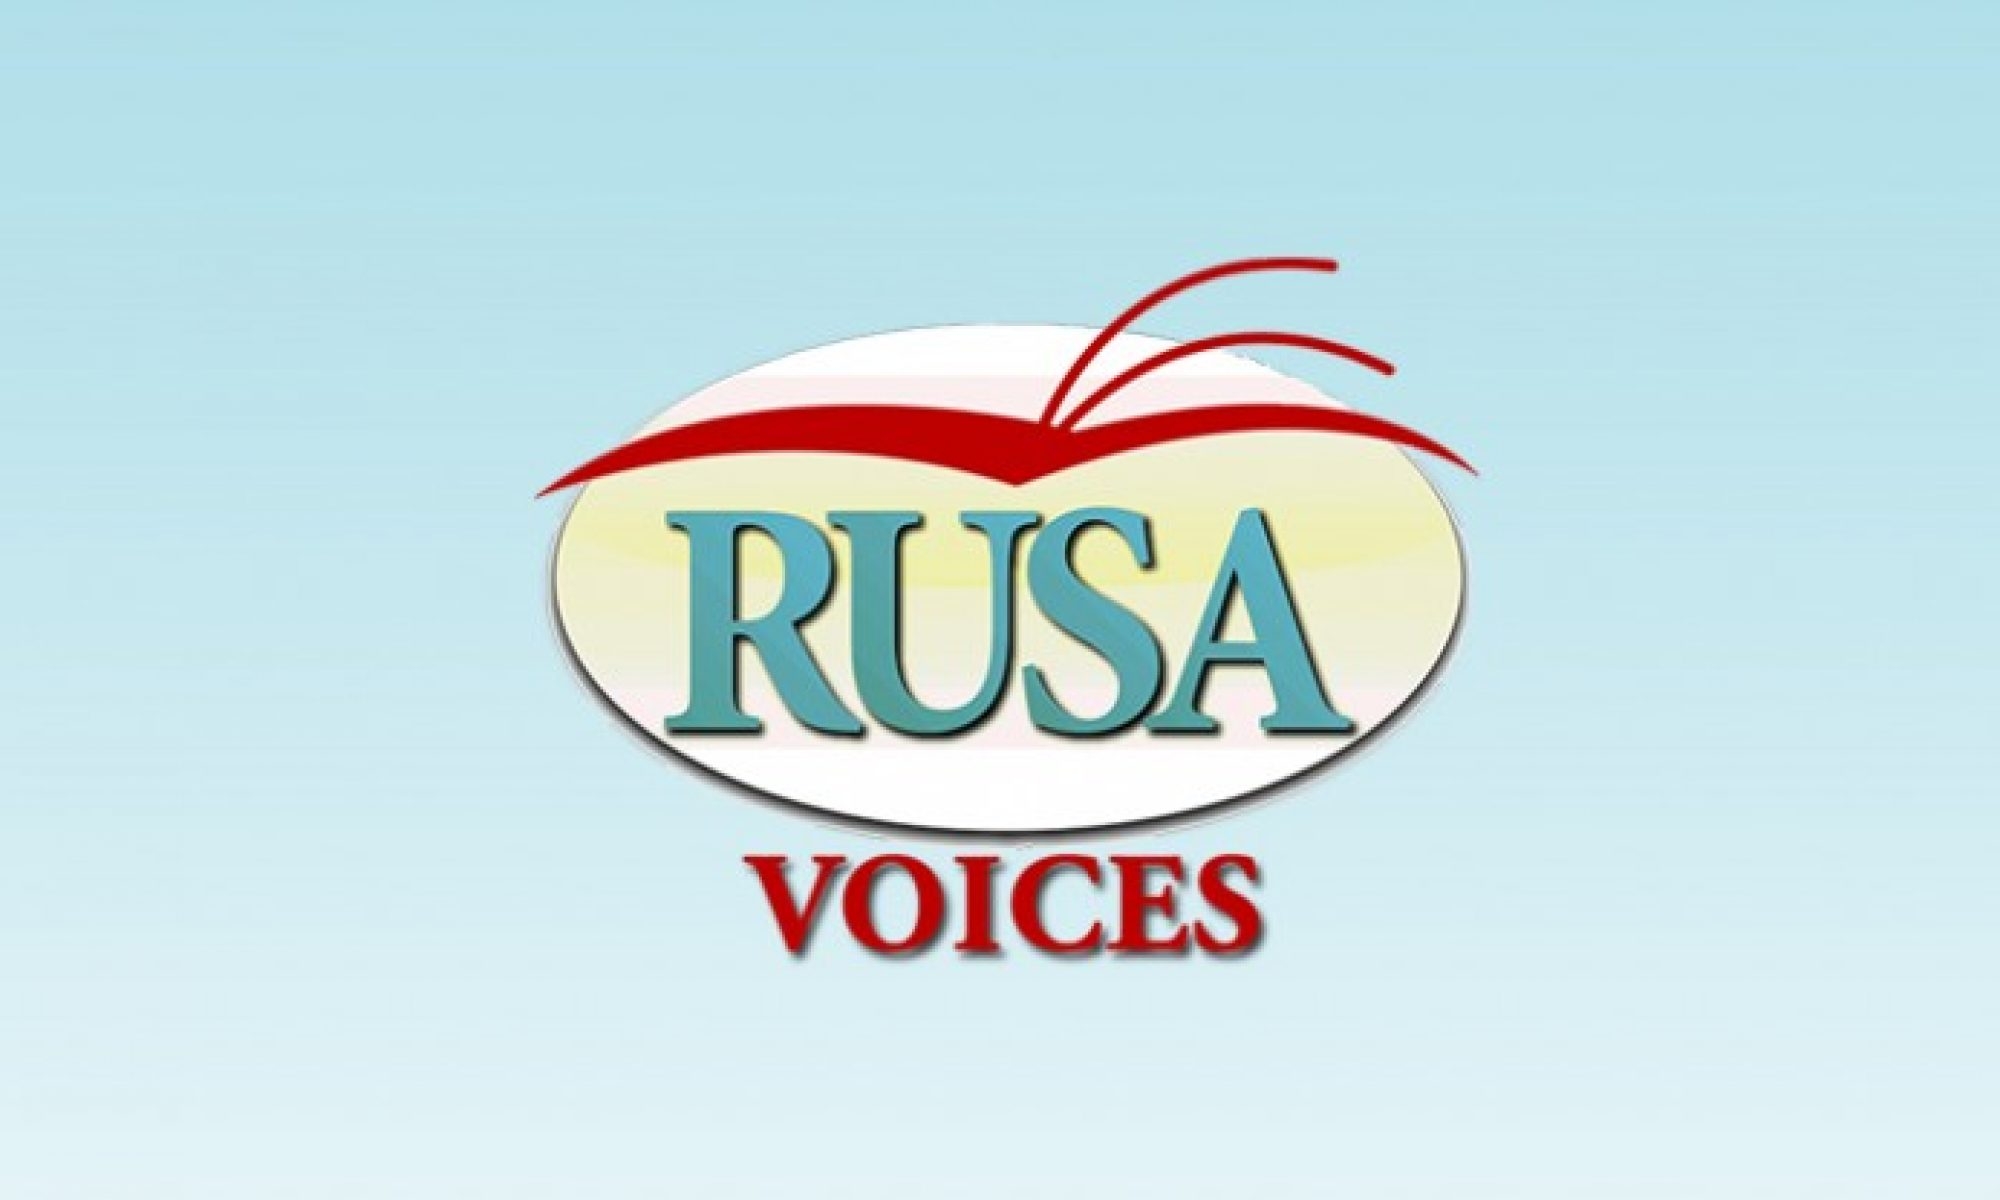 RUSA Voices